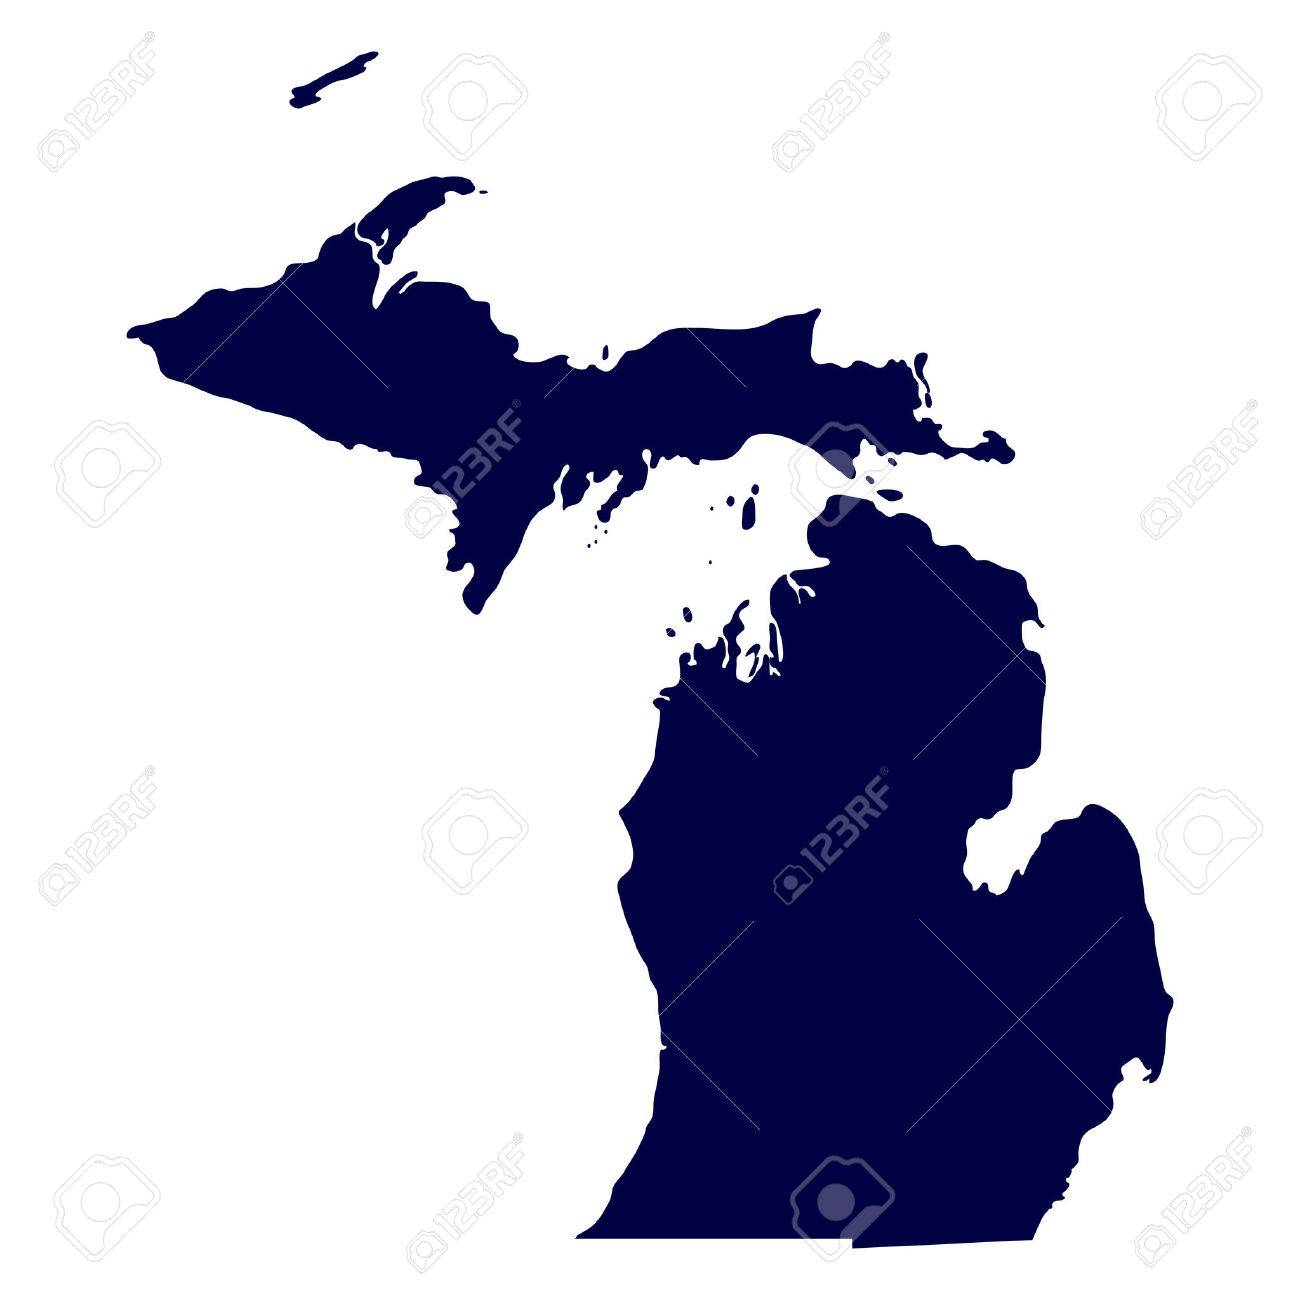 map of the U S state of Michigan - 28009878